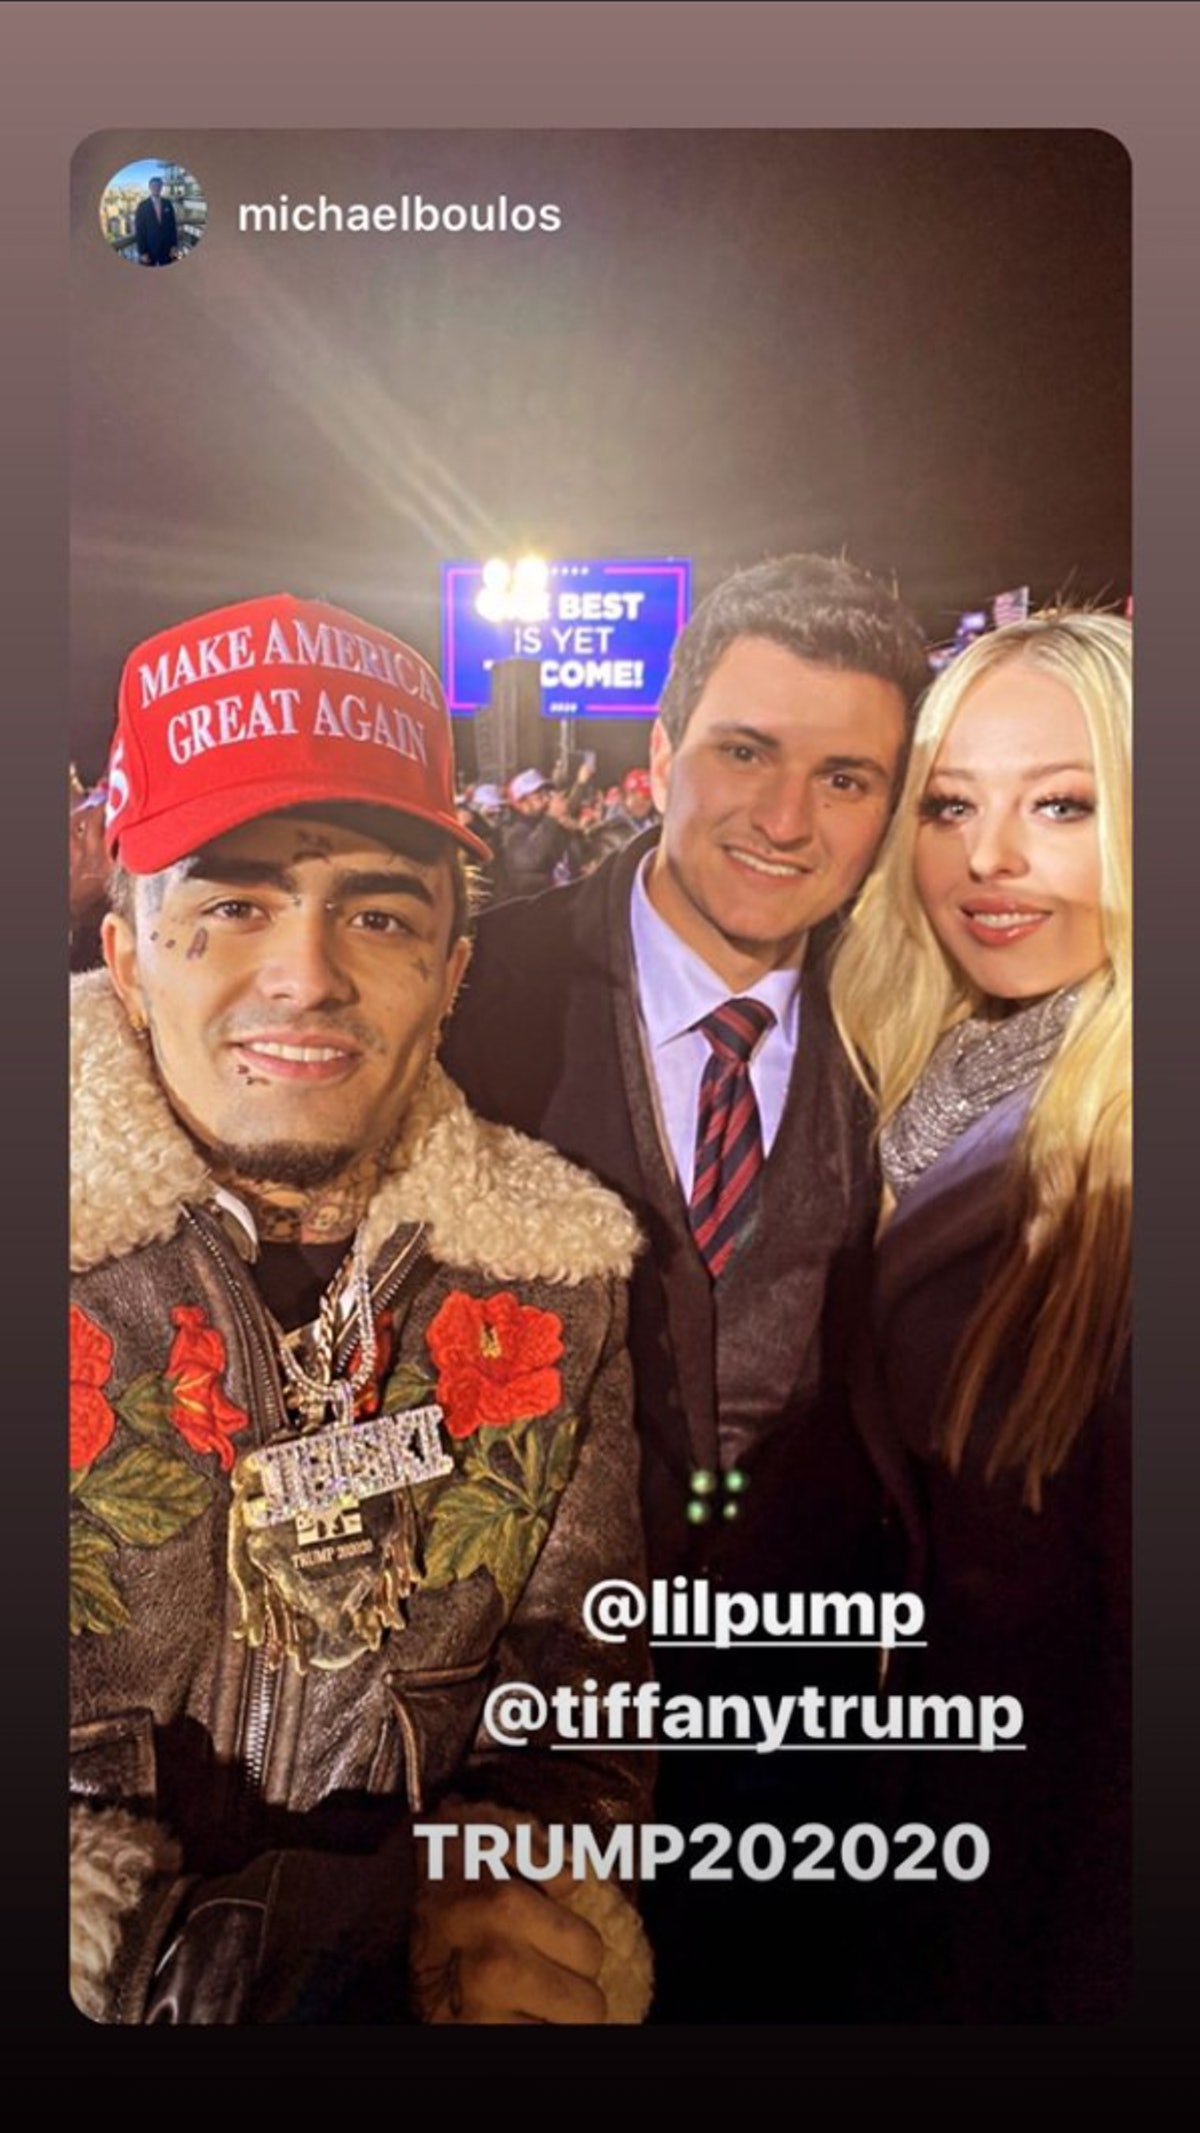 Tiffany Trump shared a photo with her boyfriend and rapper Lil' Pump.